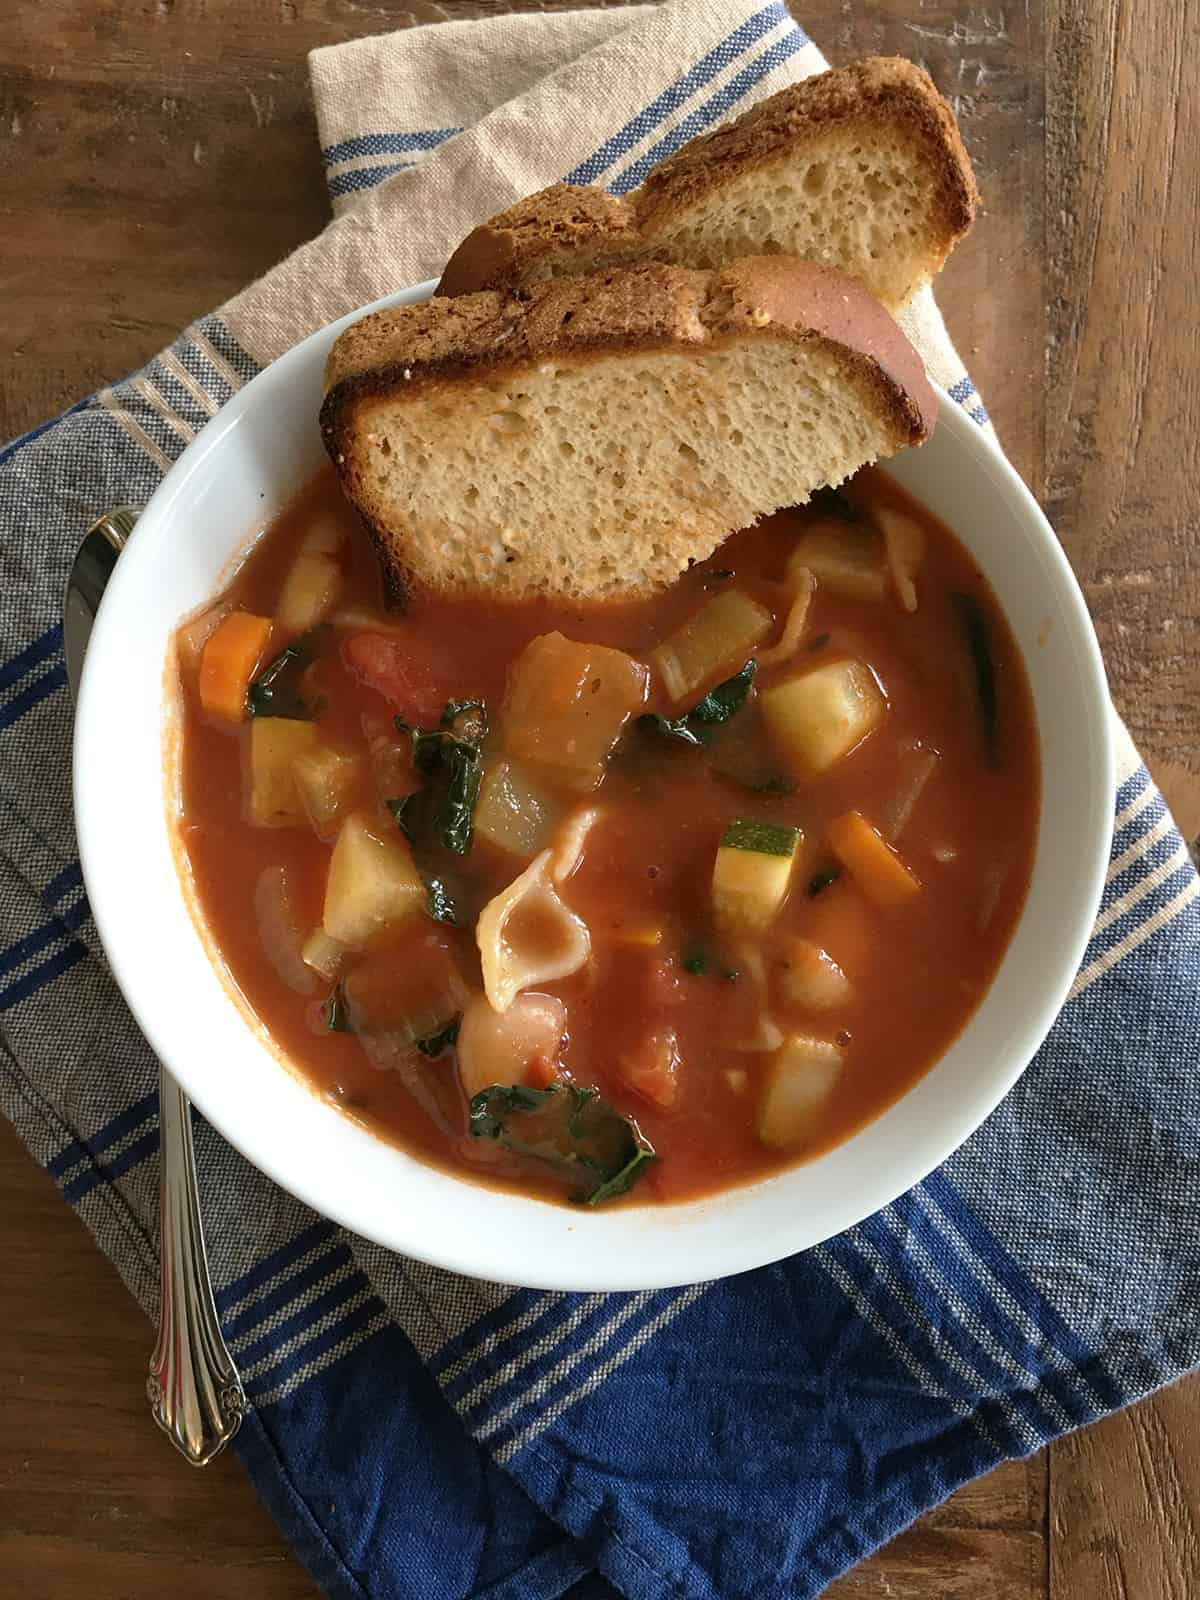 Minestrone soup and toasted bread in a white bowl atop a brown wood table